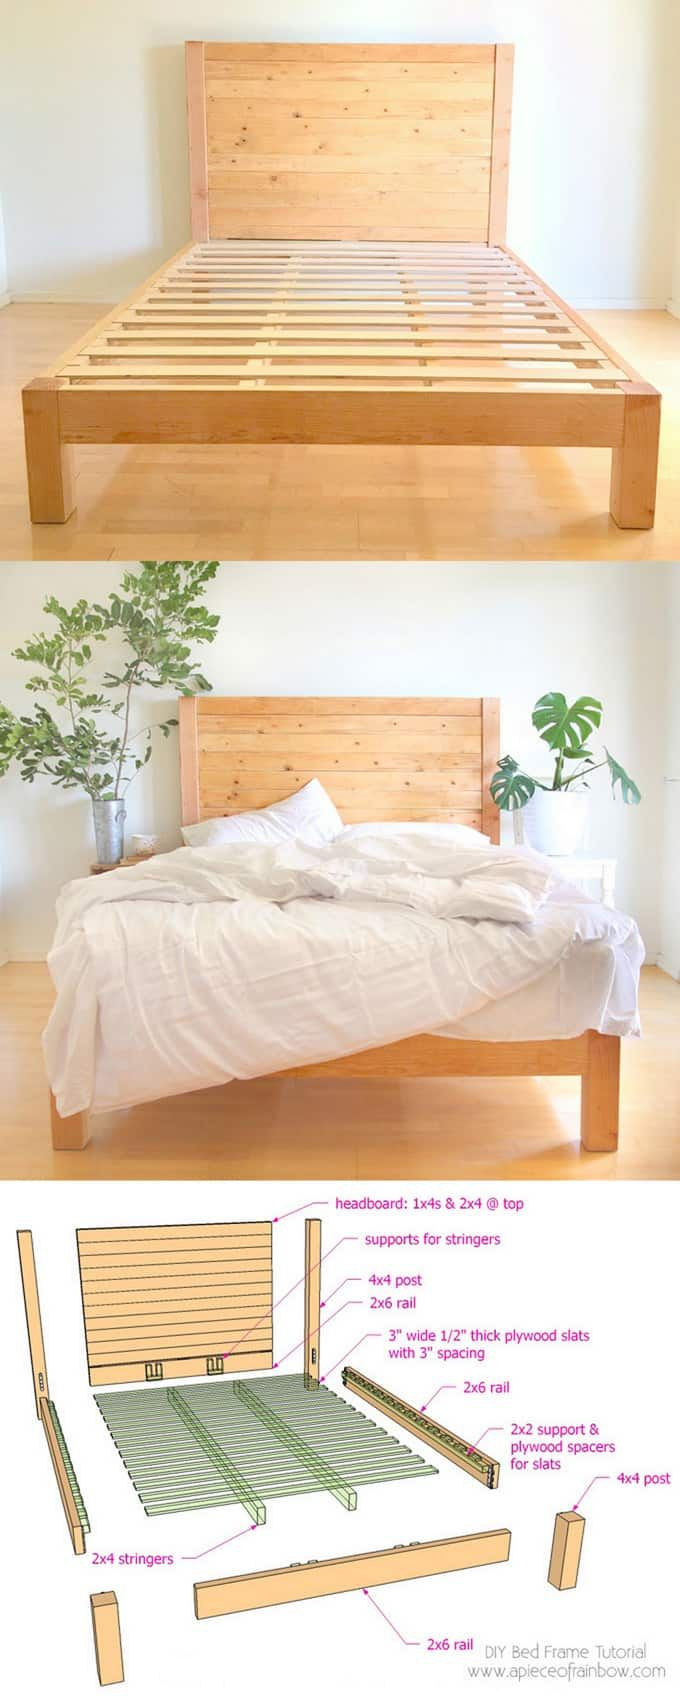 Best ideas about DIY Headboards For Queen Beds . Save or Pin DIY Bed Frame and Wood Headboard Now.